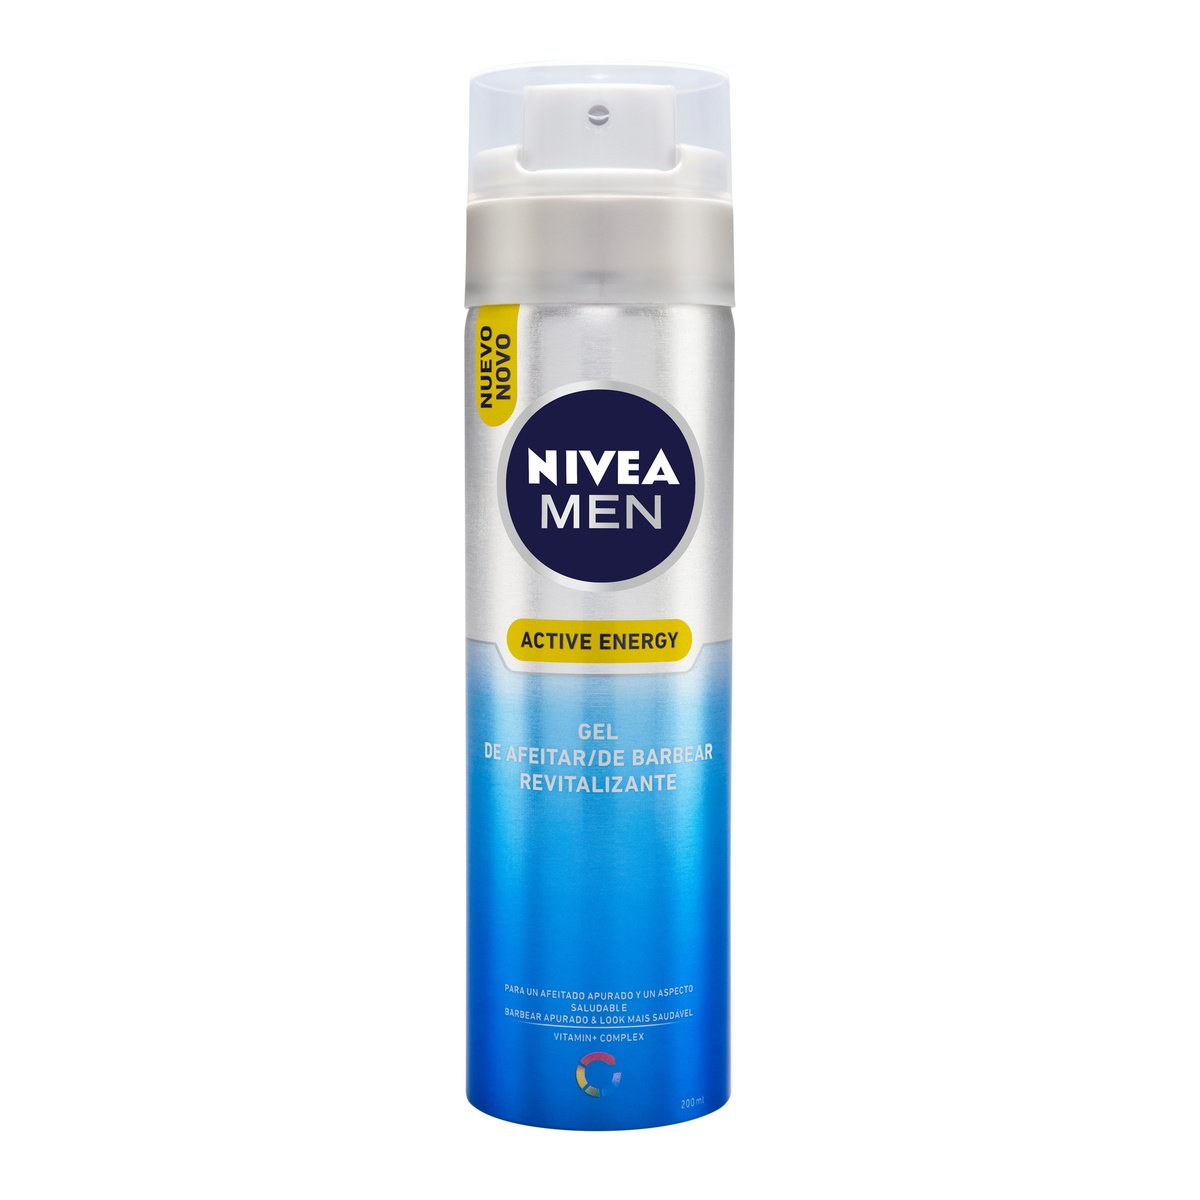 NIVEA MEN Active Energy - Gel de Afeitar Revitalizante , gel facial para un afeitado apurado y revitalizado, gel de afeitado para un aspecto saludable ...